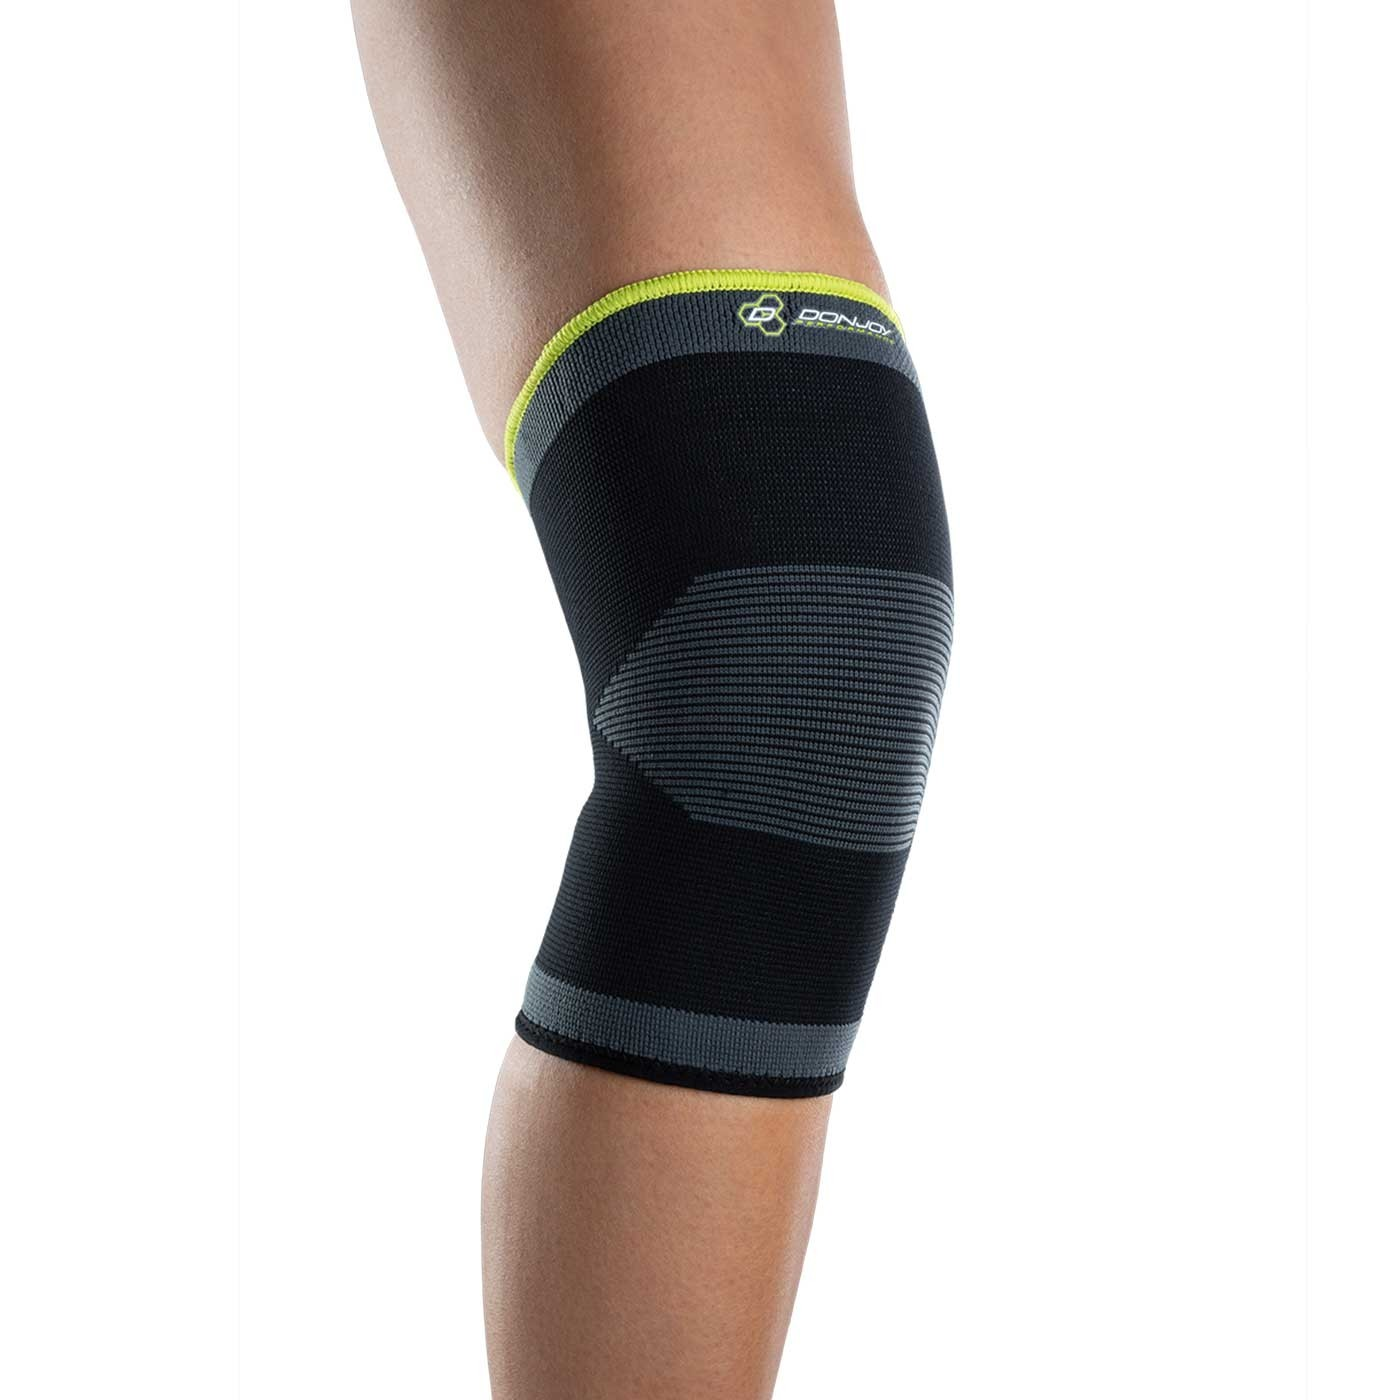 DonJoy Performance Knit Knee Sleeve